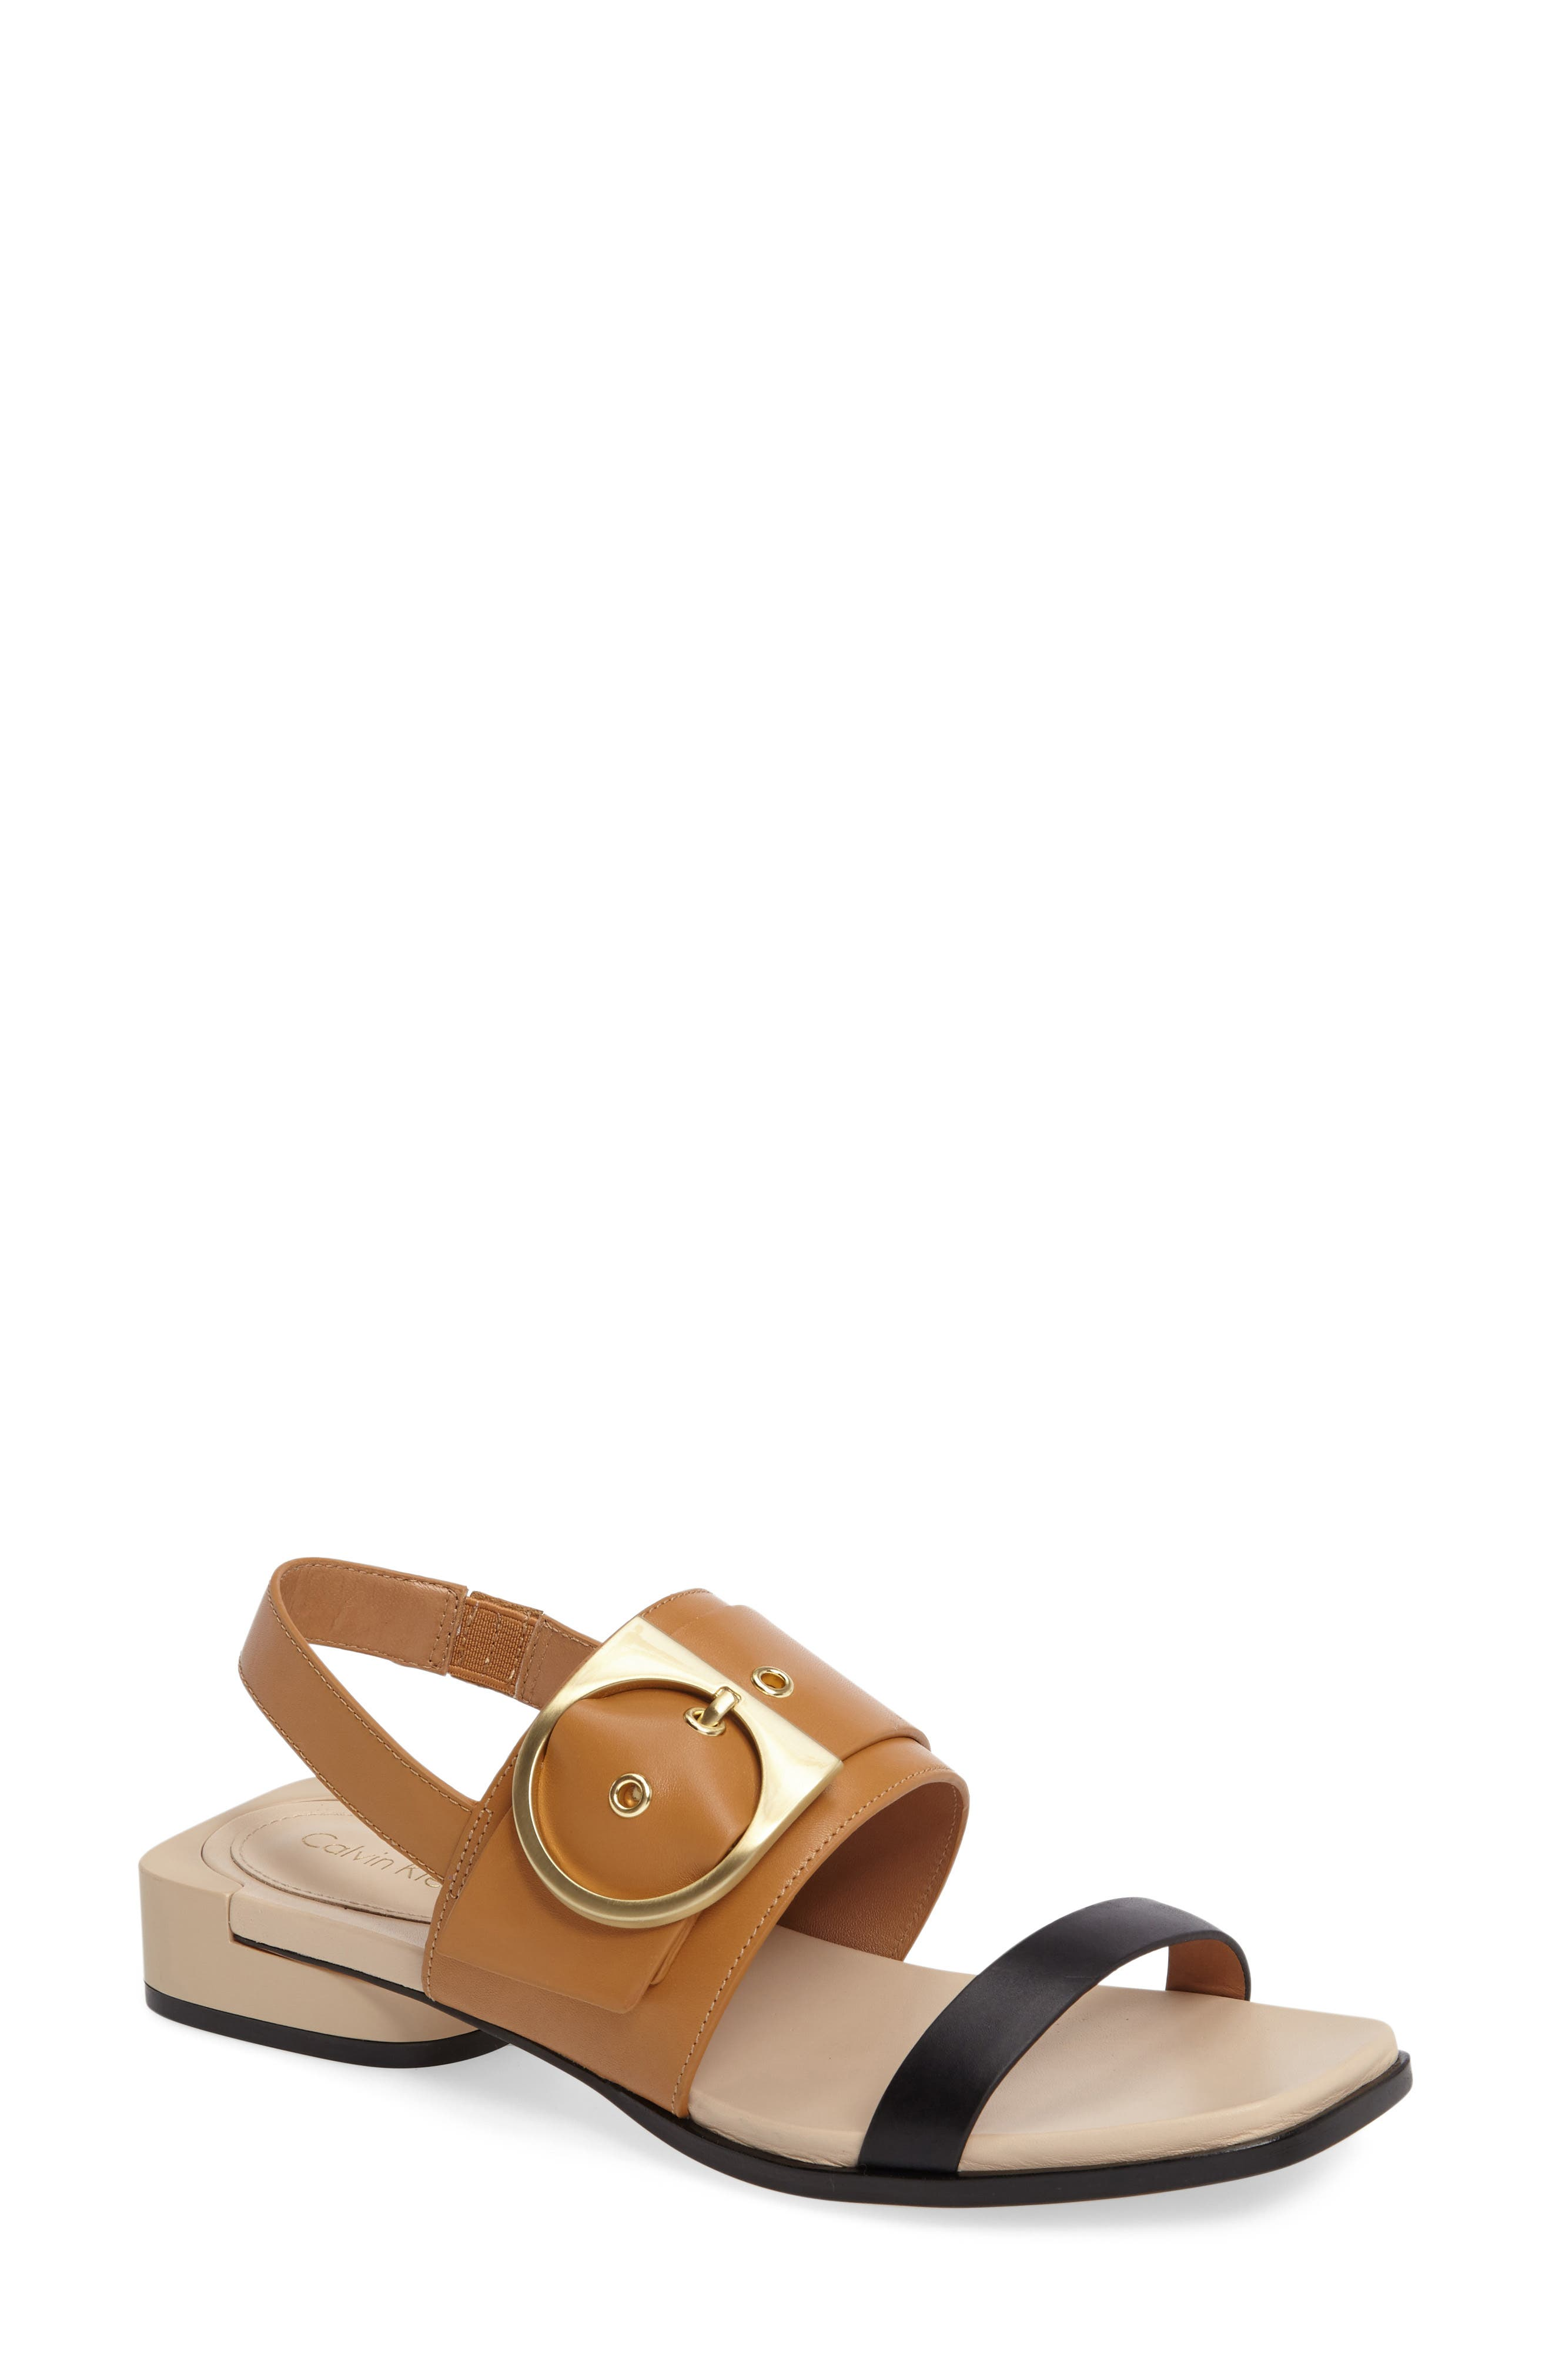 Abree Sandal,                         Main,                         color, 200